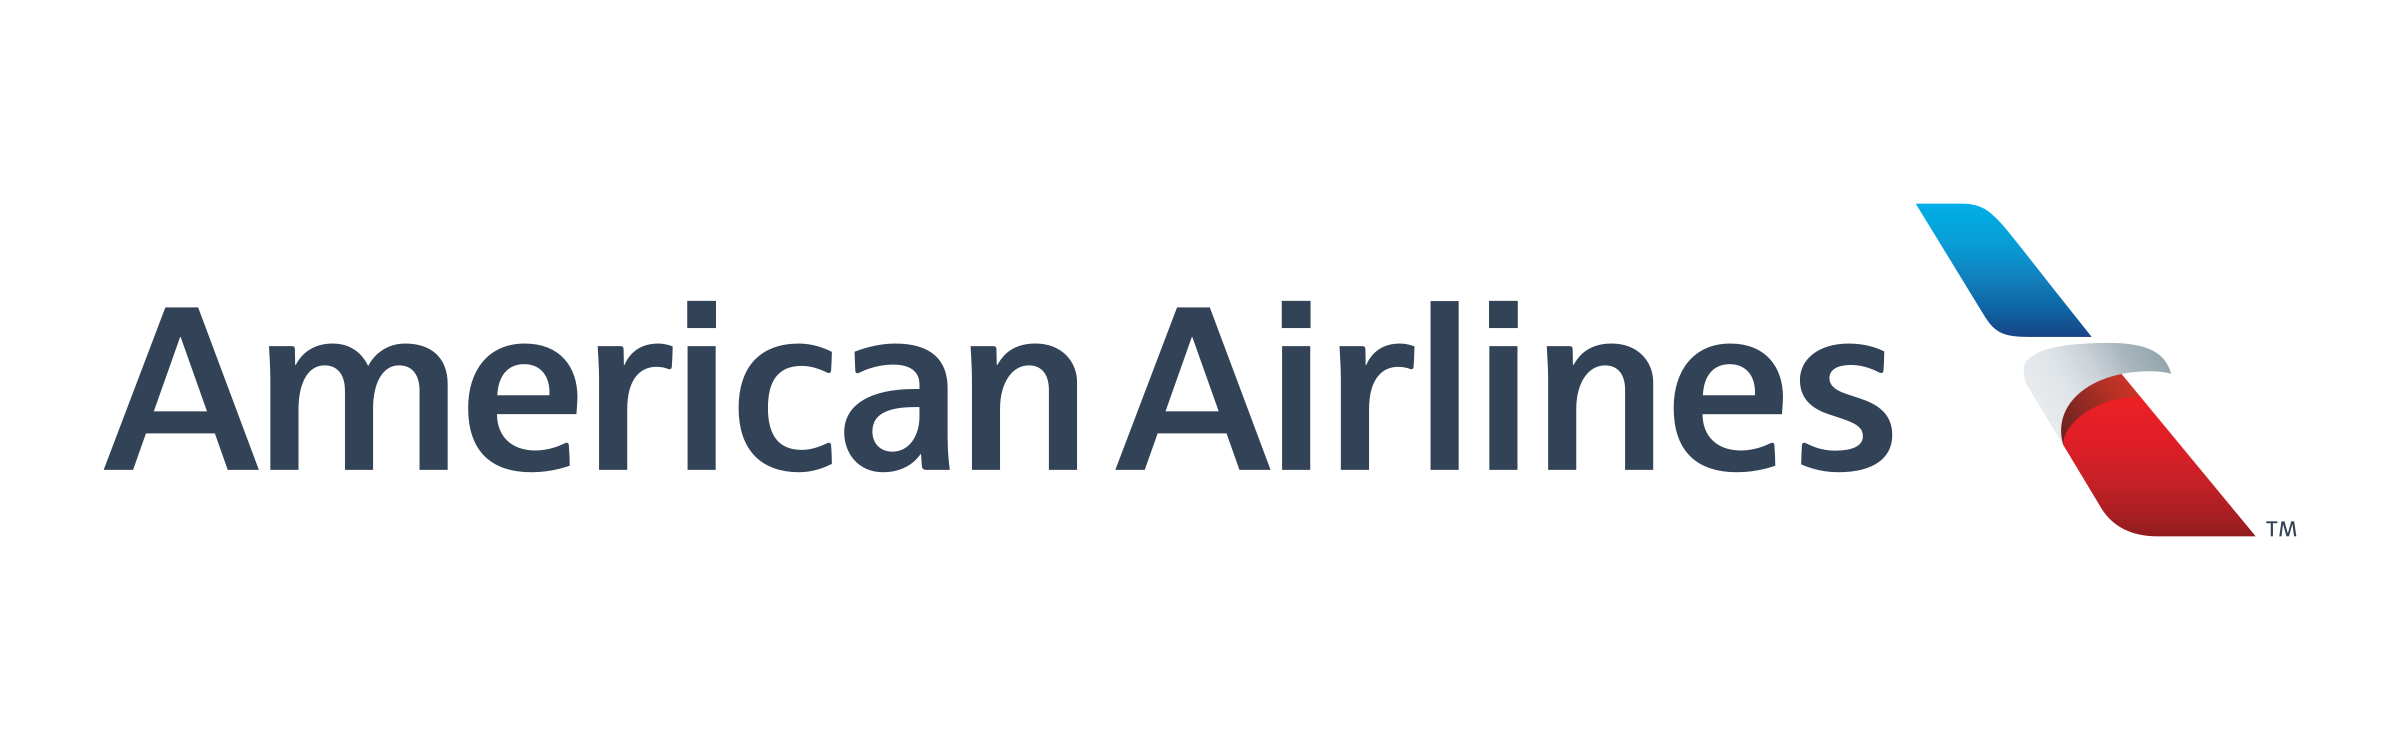 American Airlines PNG